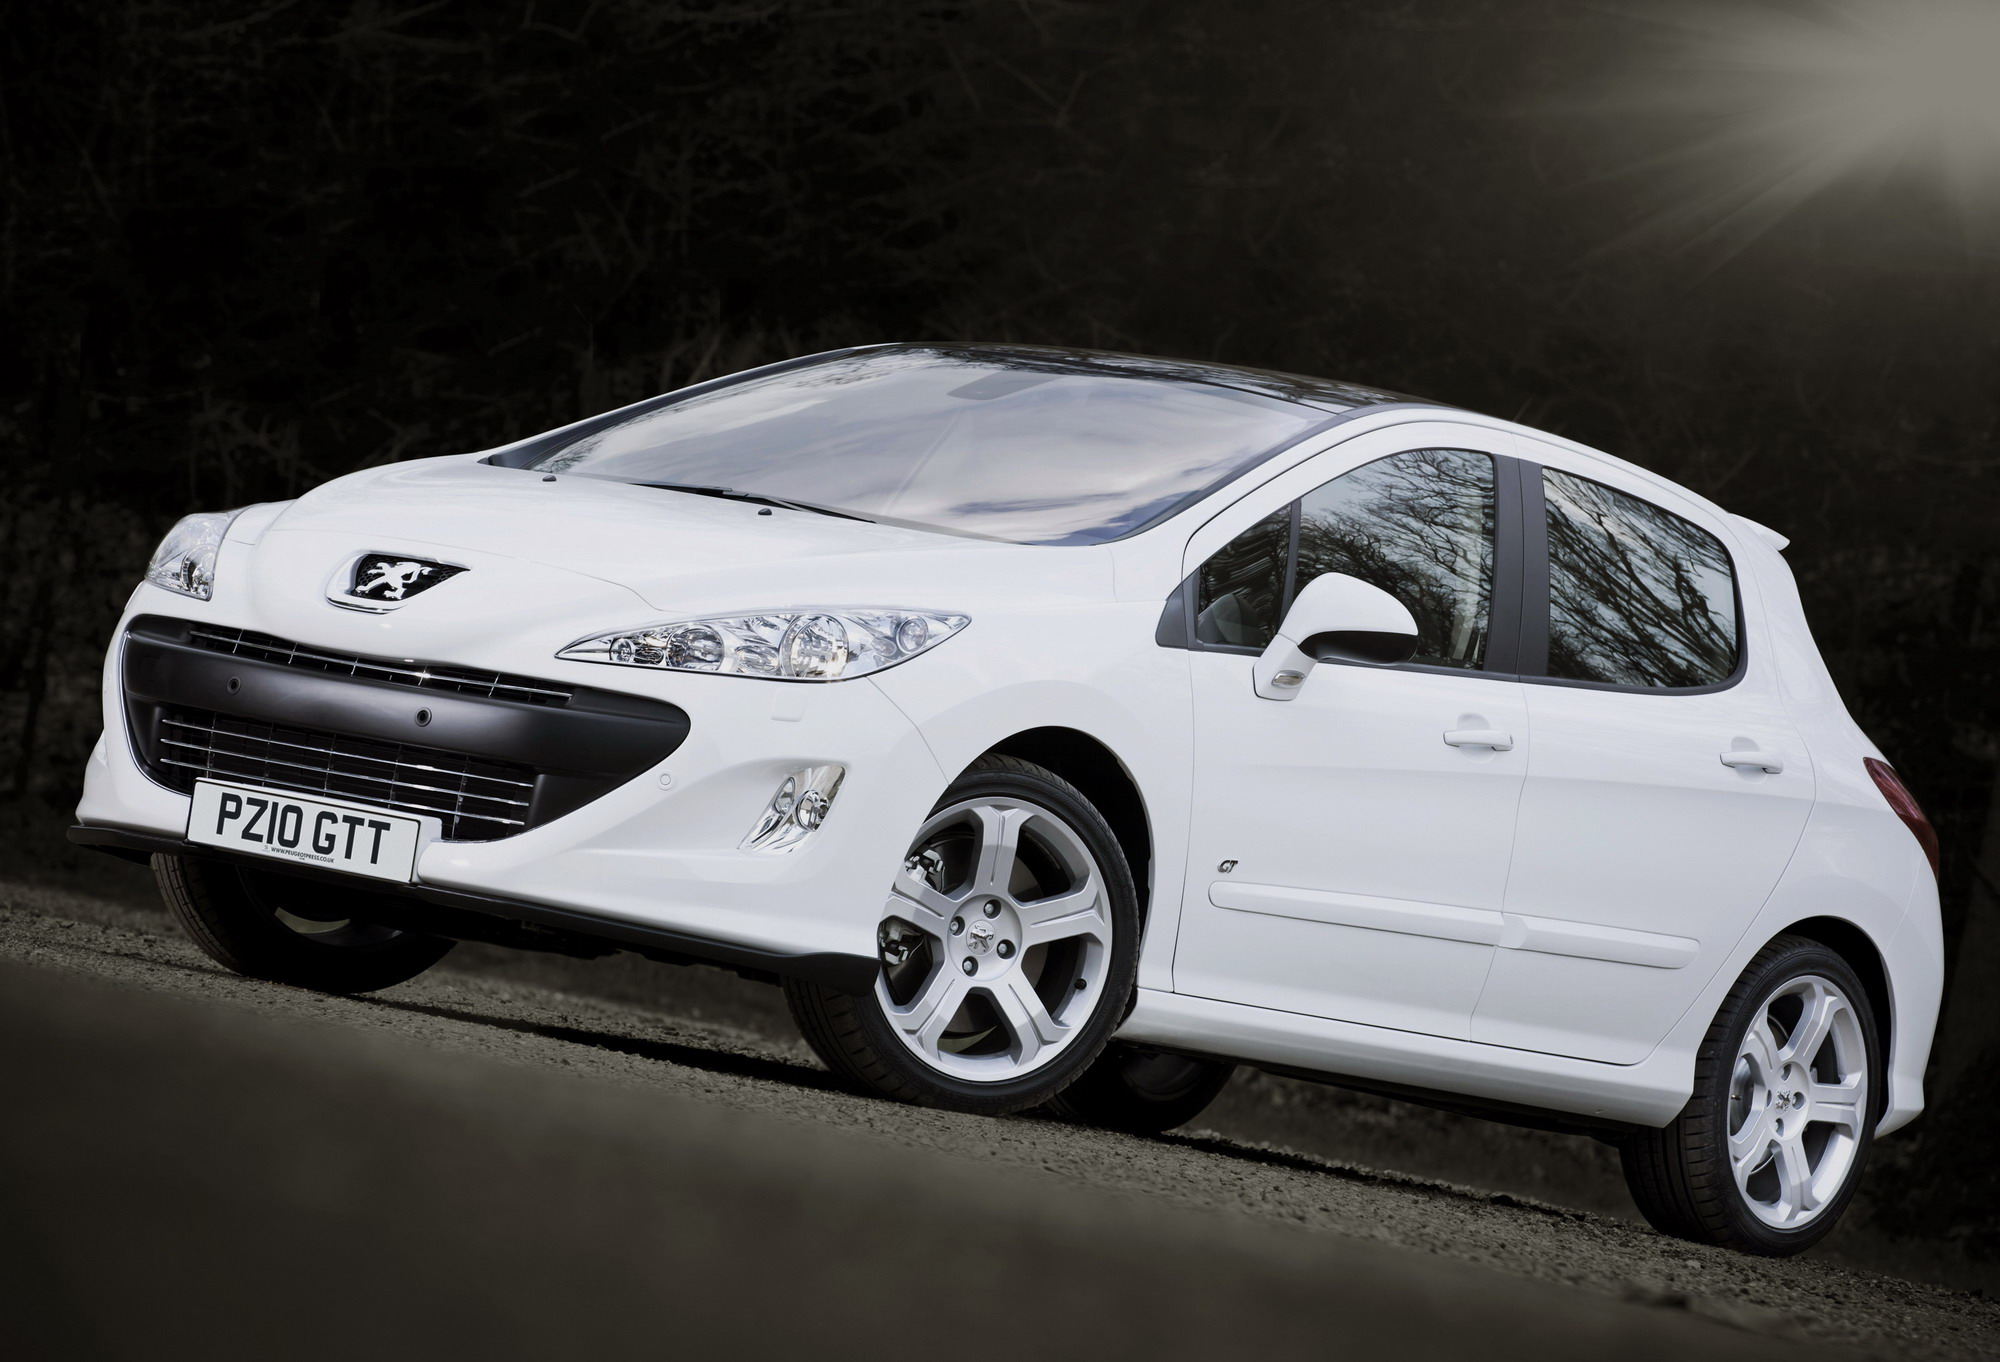 2010 Peugeot 308 GT THP 200 Review - Top Speed